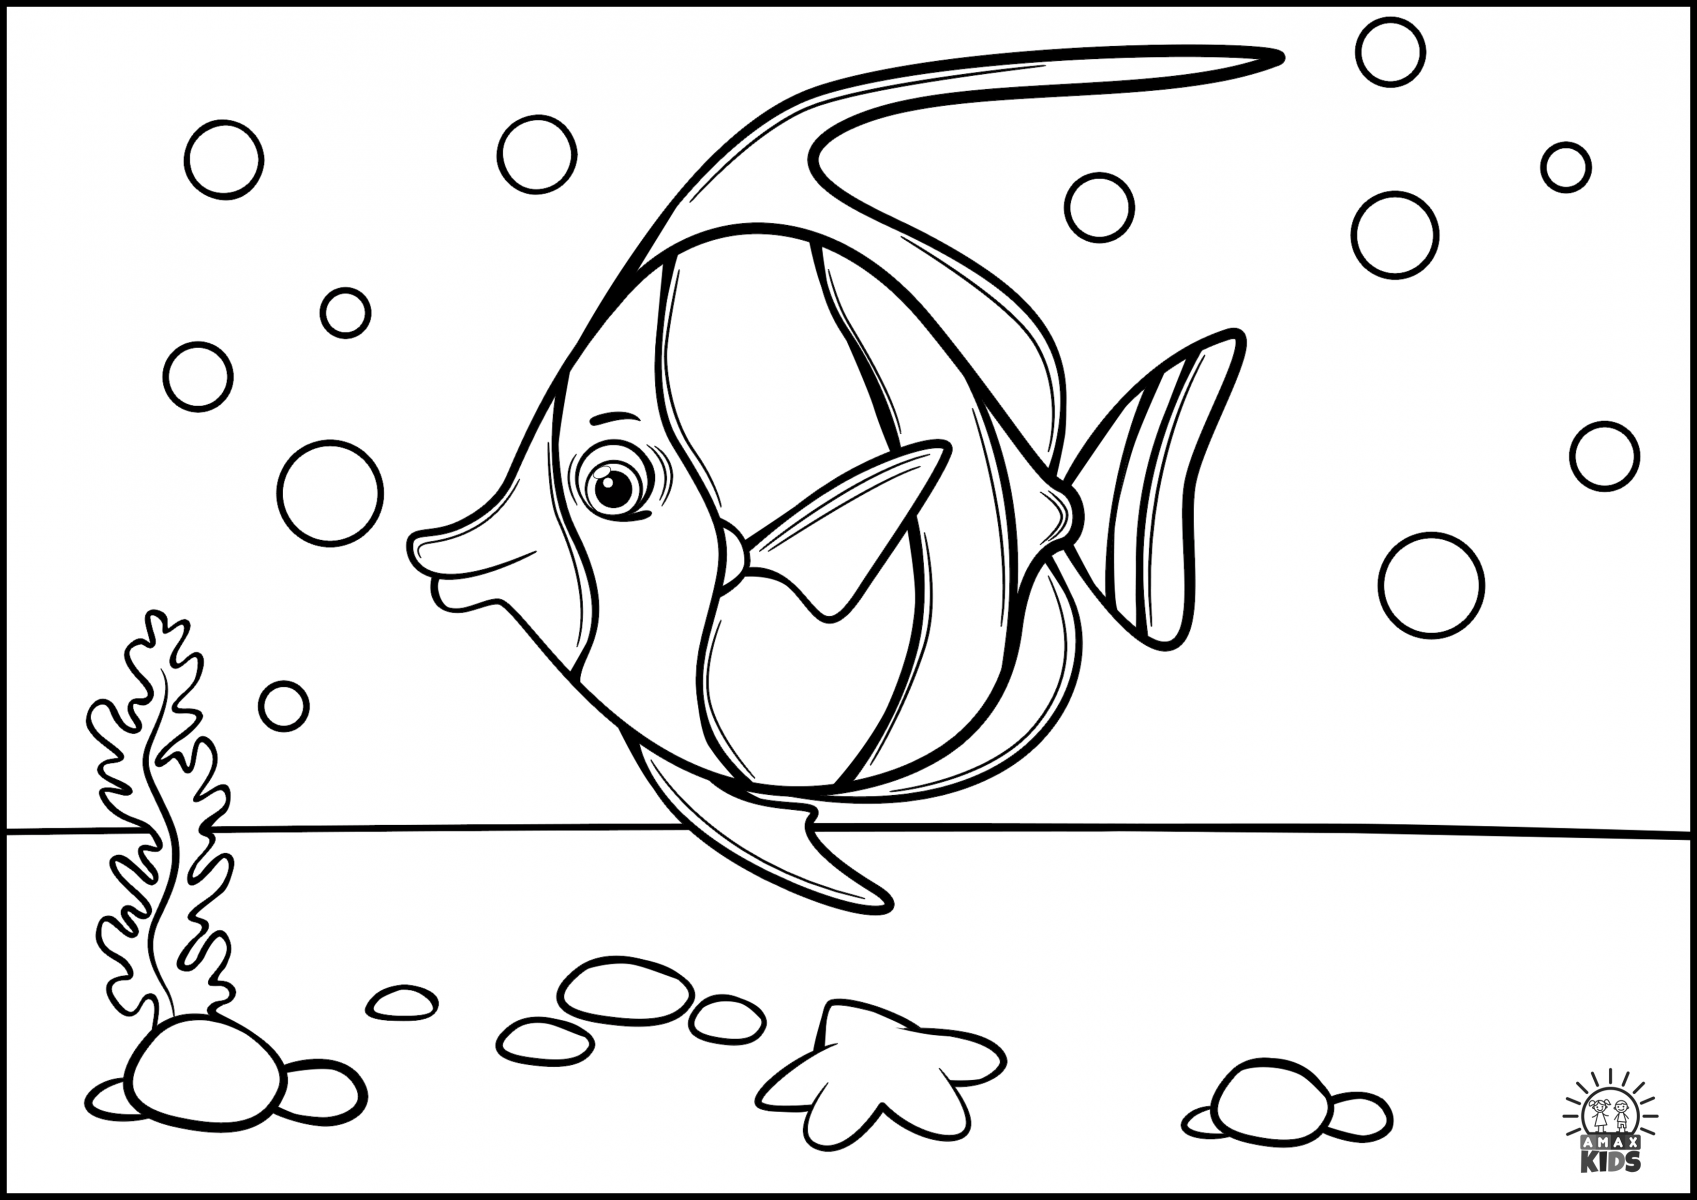 Coloring pages for kids with sea creatures | Amax Kids